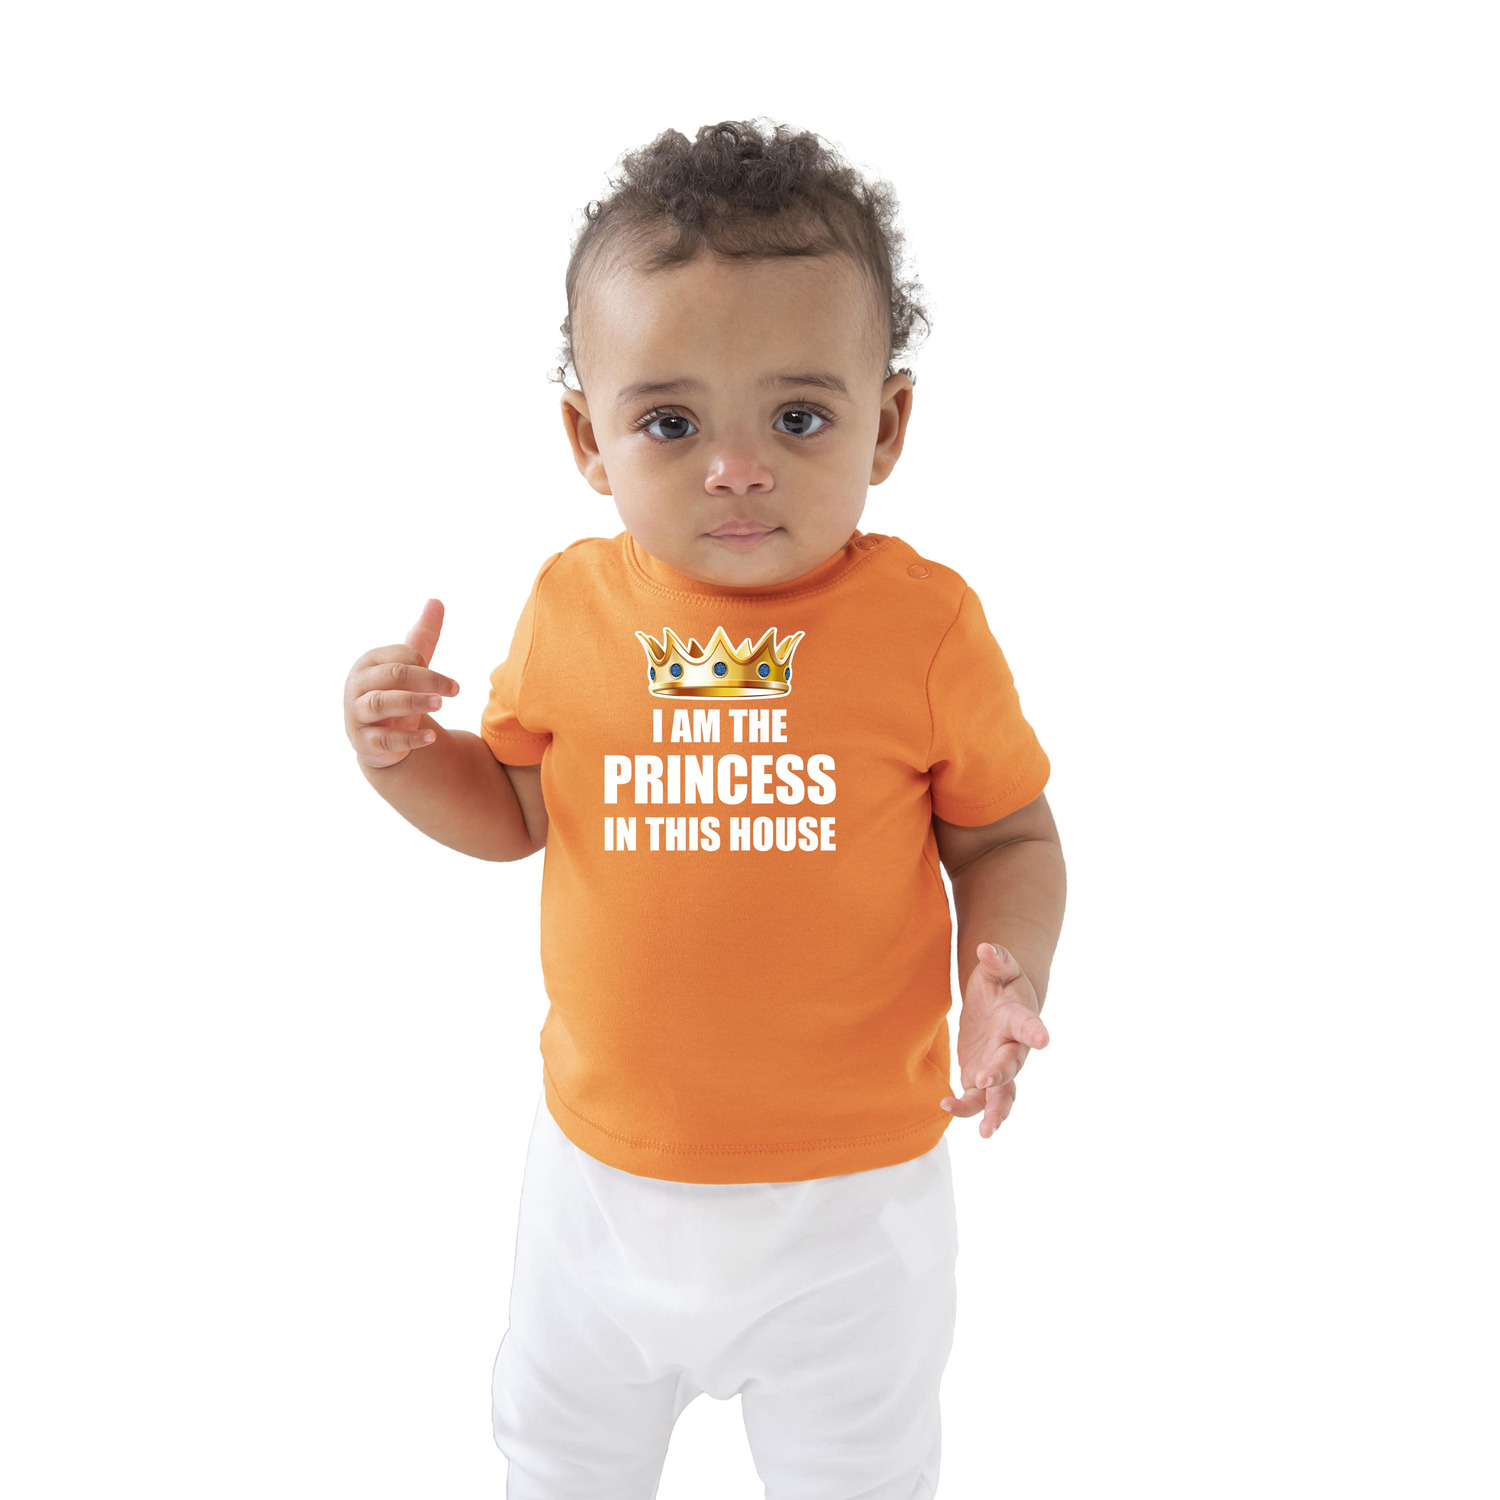 I am the princess in this house t-shirt oranje Koningsdag baby-peuter voor meisjes